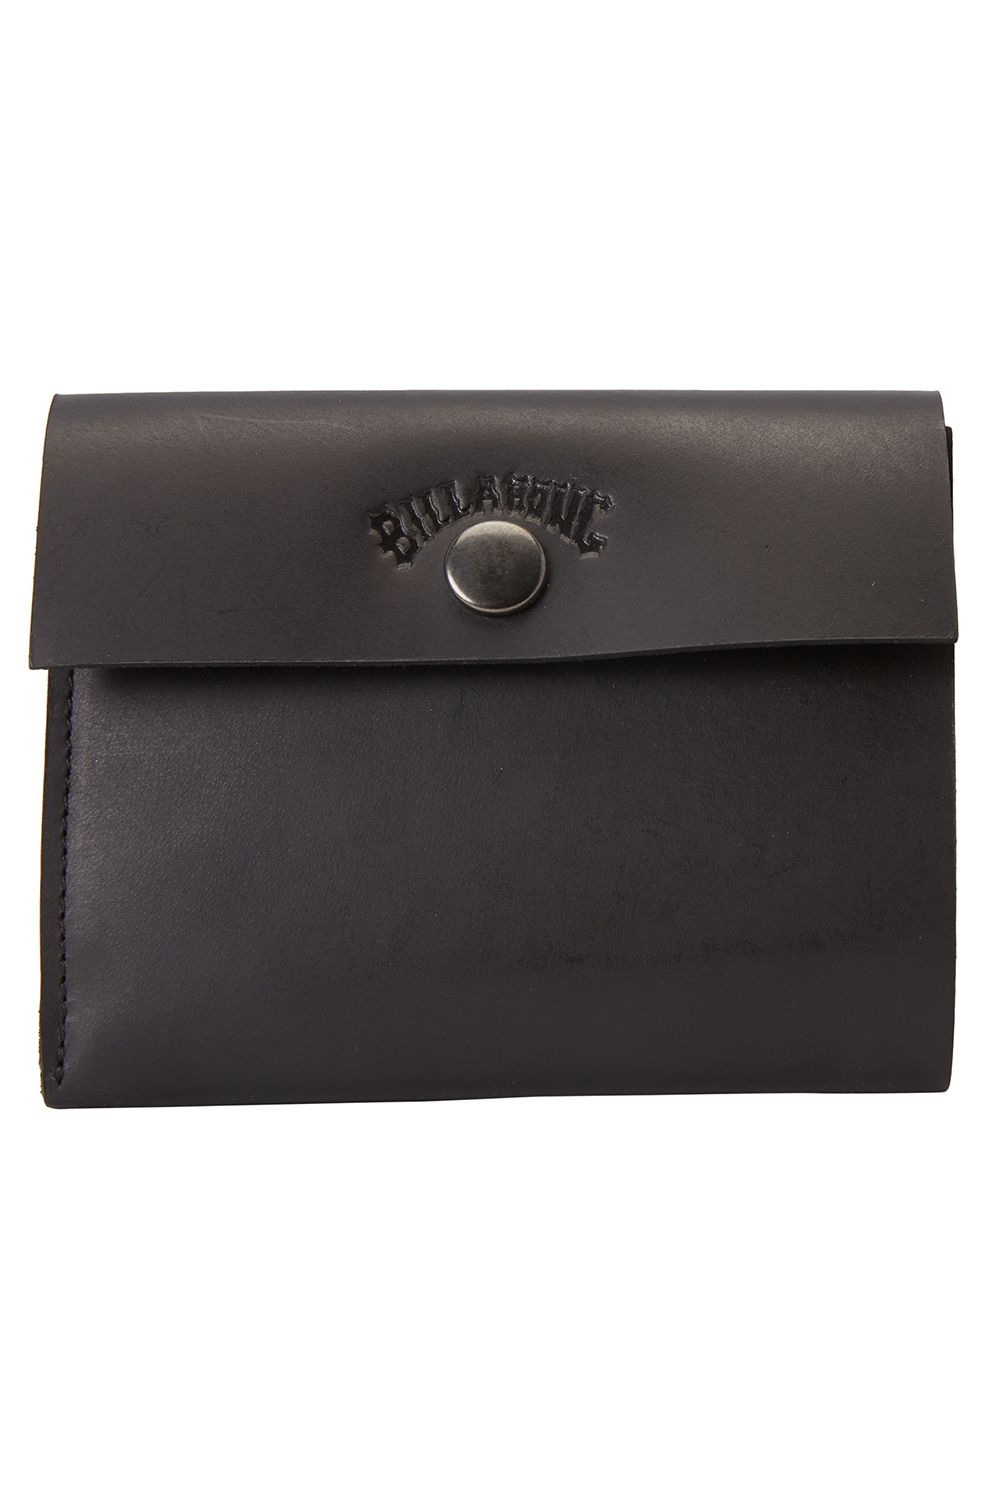 Billabong Leather Wallet TRIBONG LEATHER WALL Black